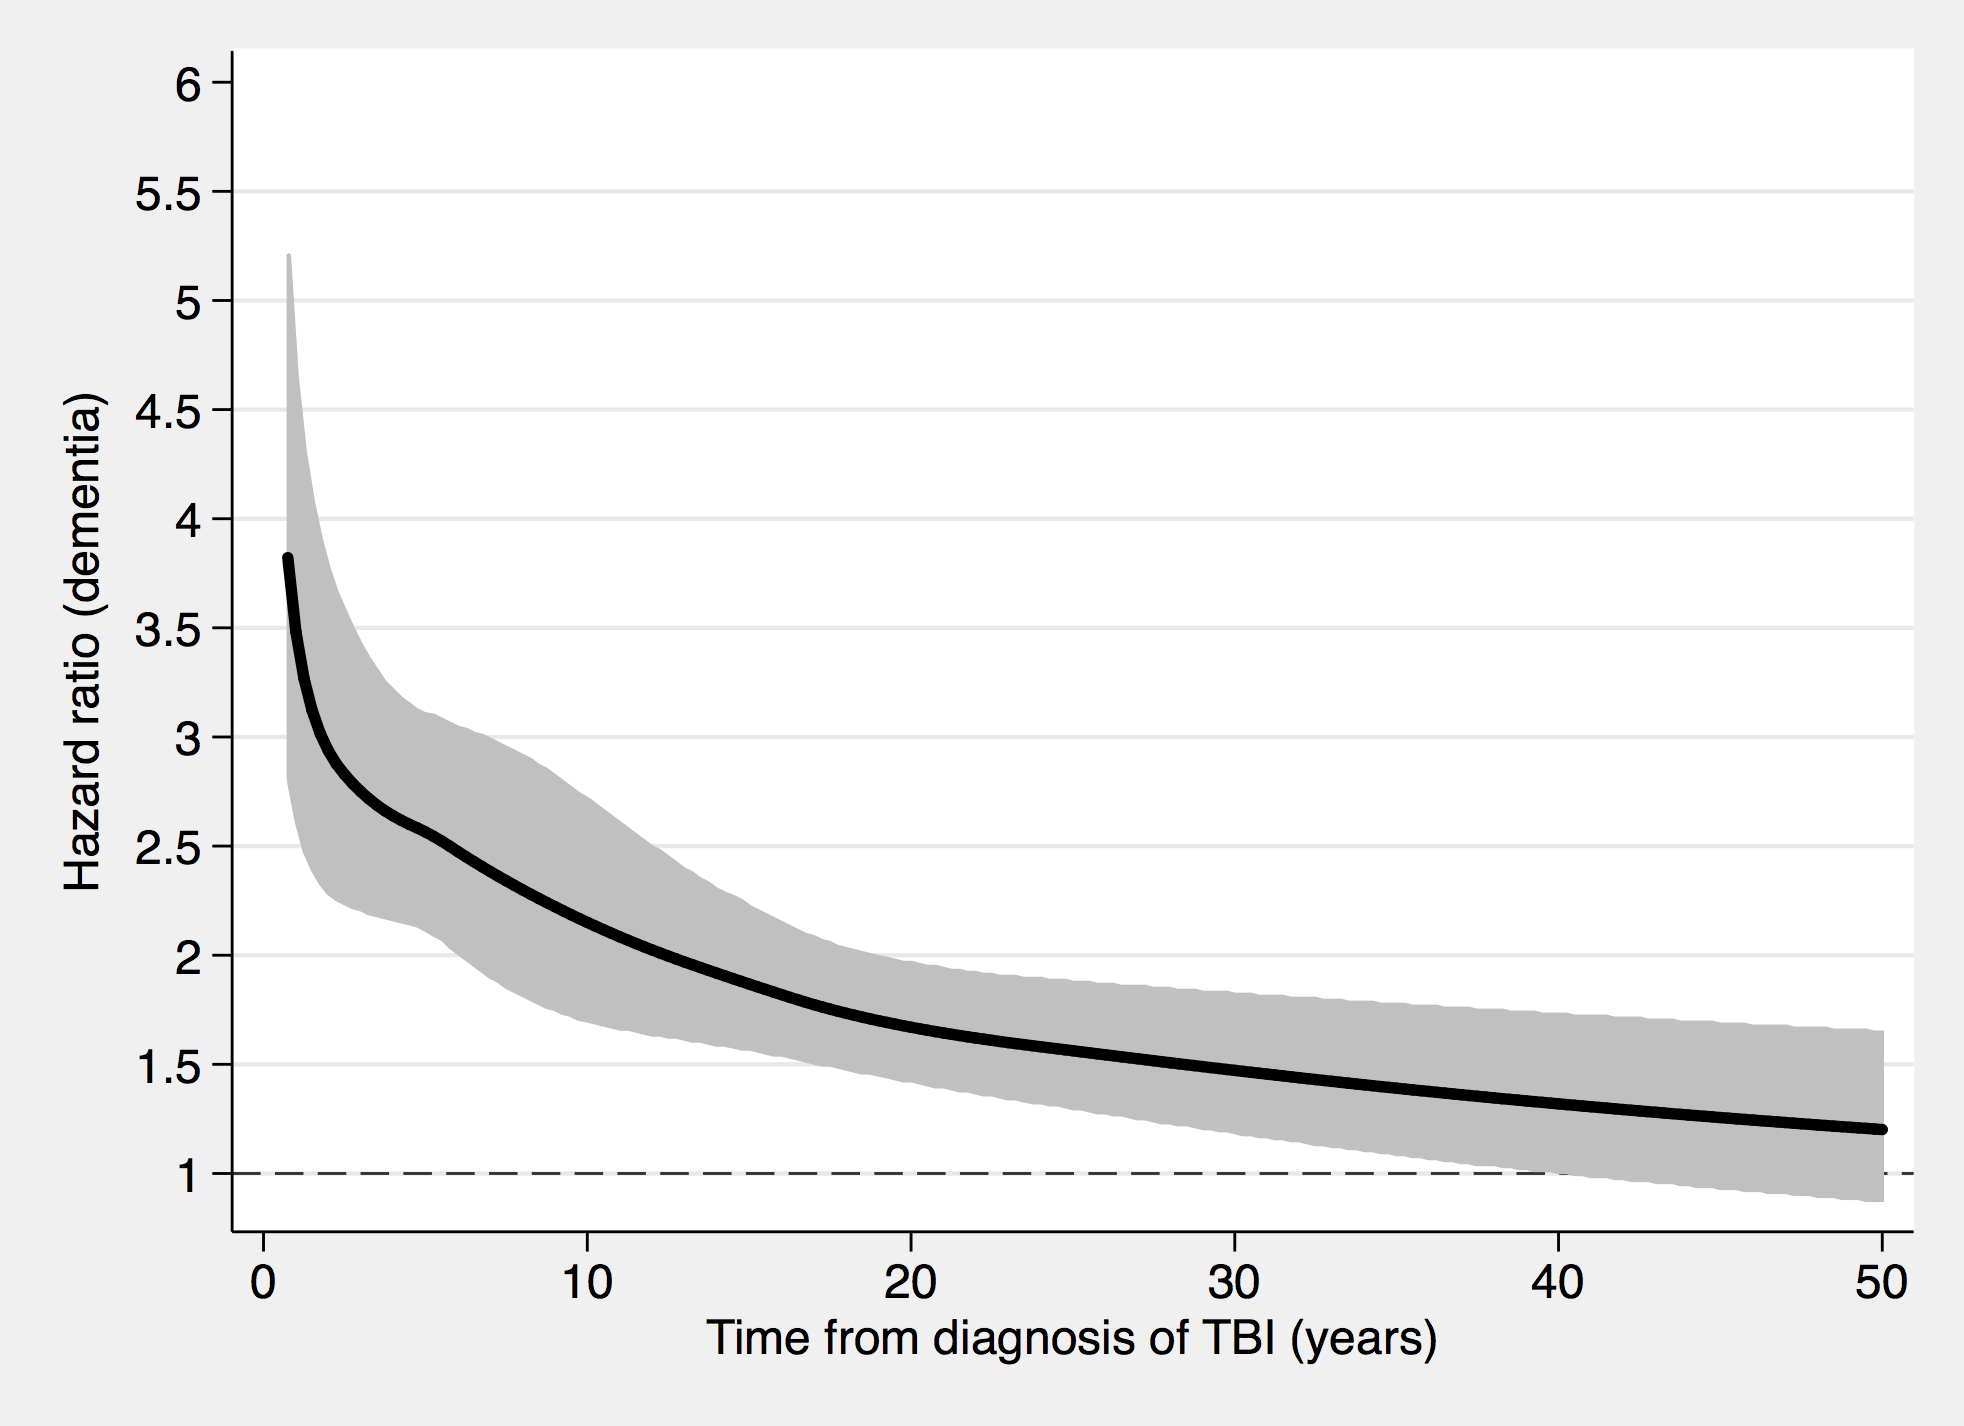 Associations between TBI and a dementia diagnosis during follow-up in 46,970 sibling pairs discordant for TBI.